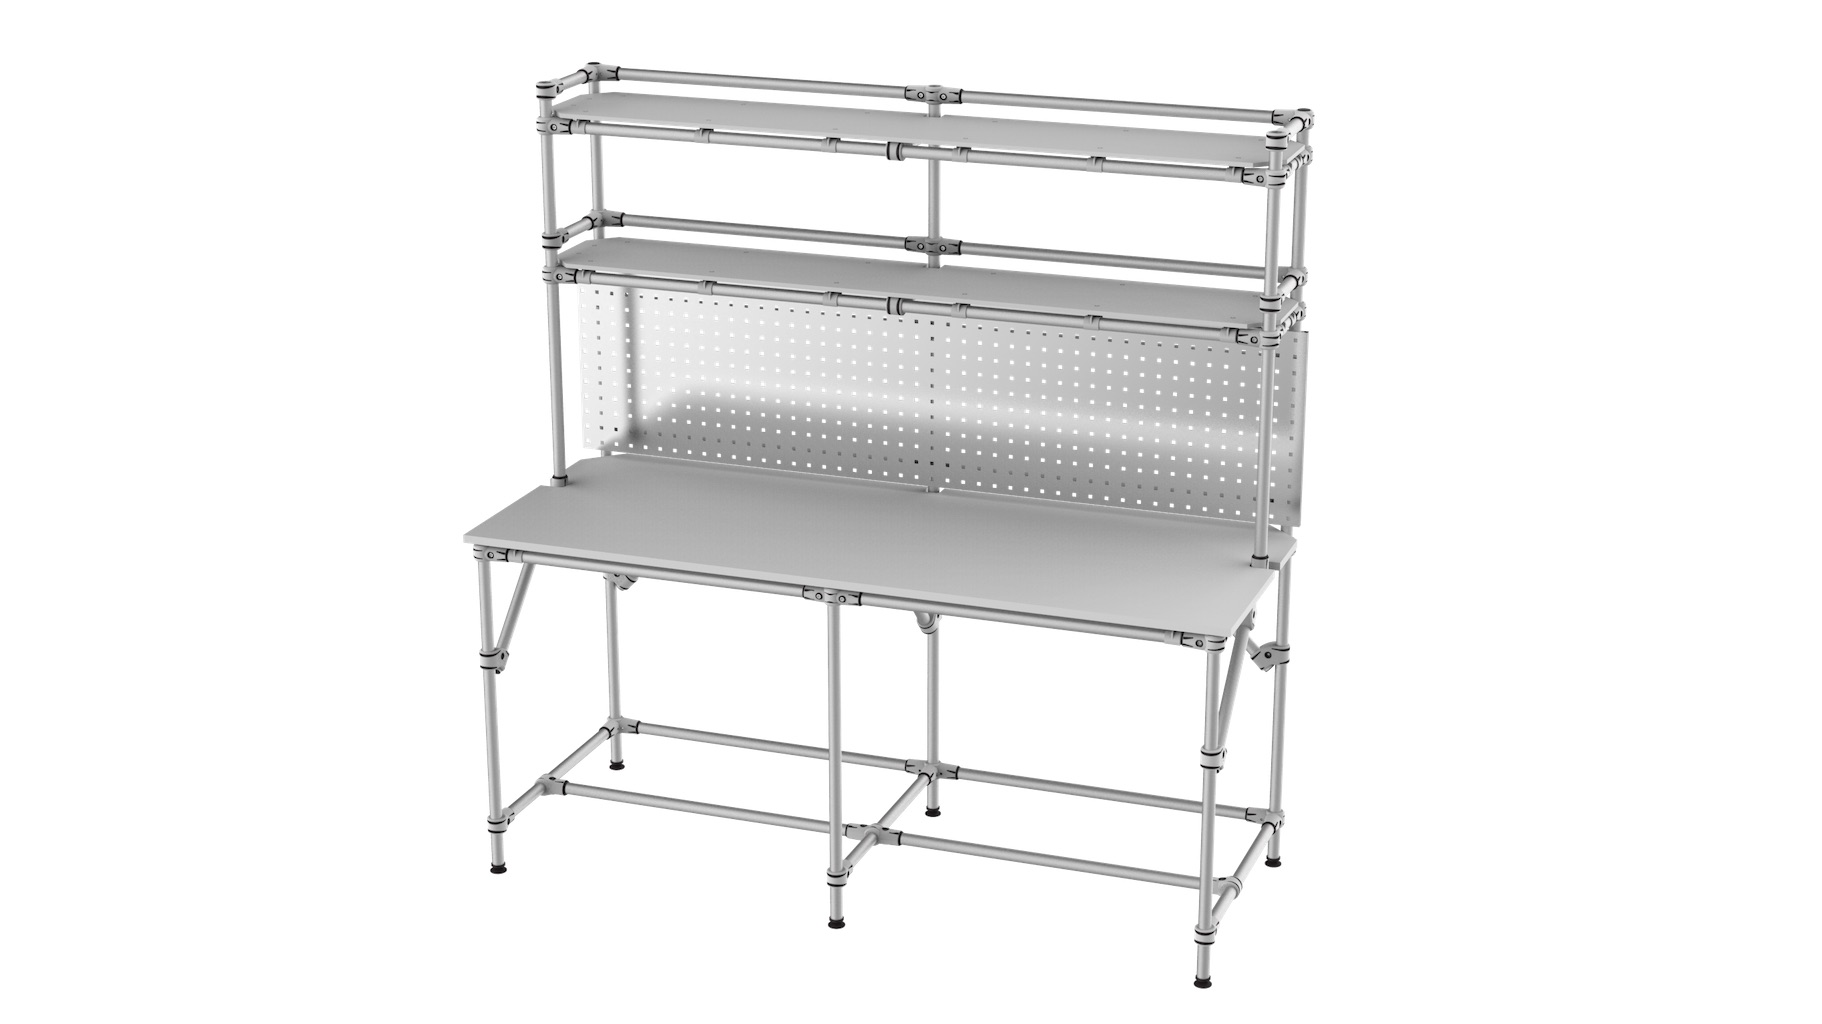 Electronic - Workstation with shelf and holder grid for electronic equipment assembly.